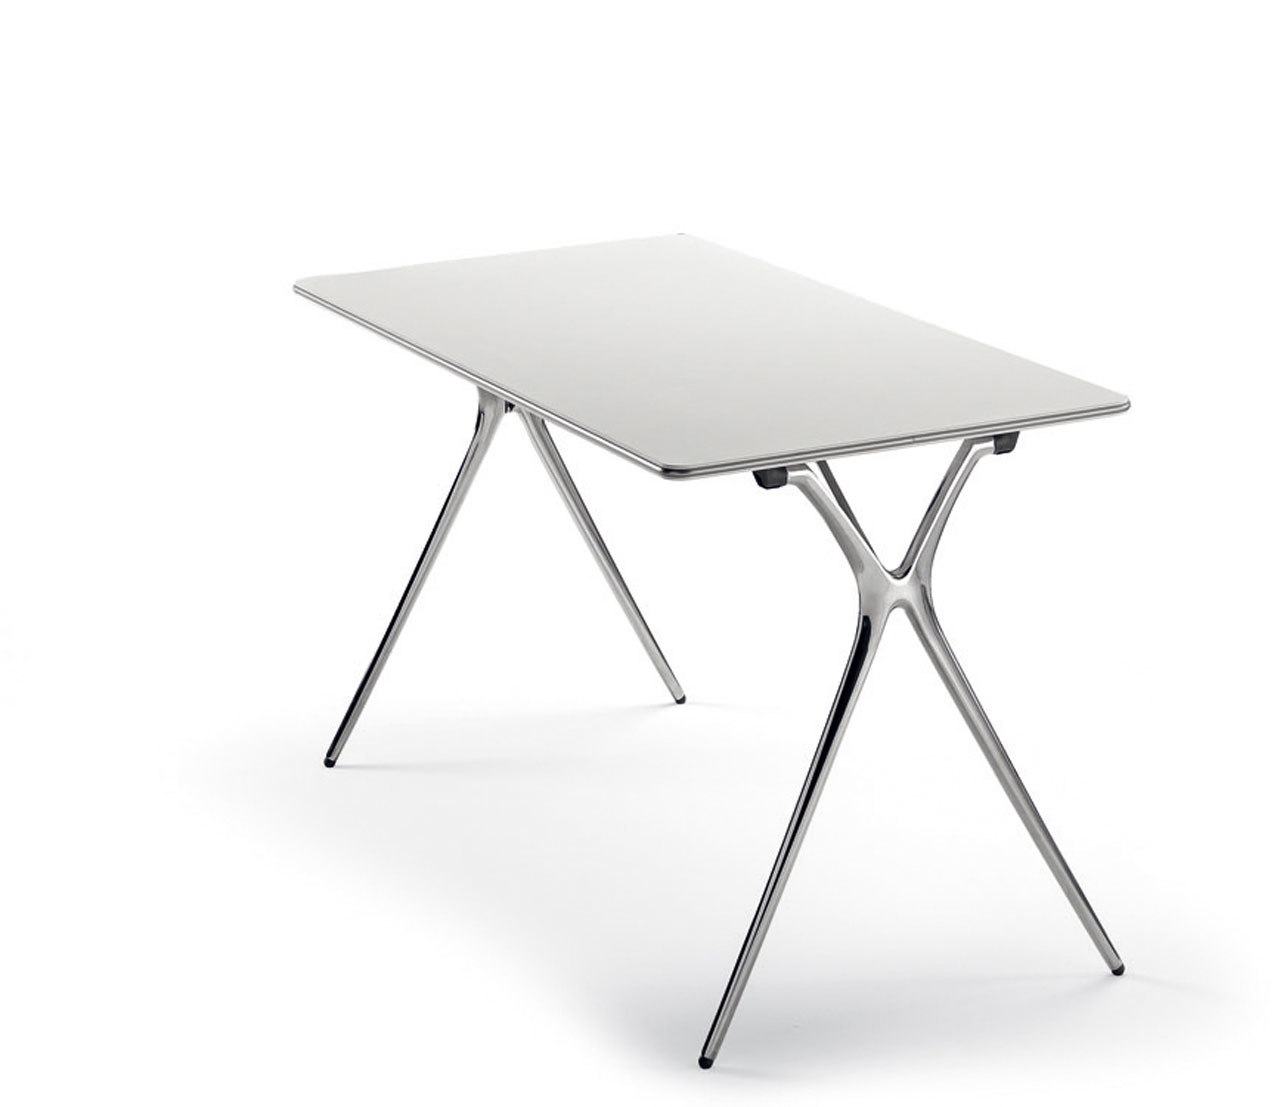 desk plek tables folding polished white aluminum legs multipurpose epoxy silver quality beauty clean lines dynamic light mobile transportable adaptable masof actiu